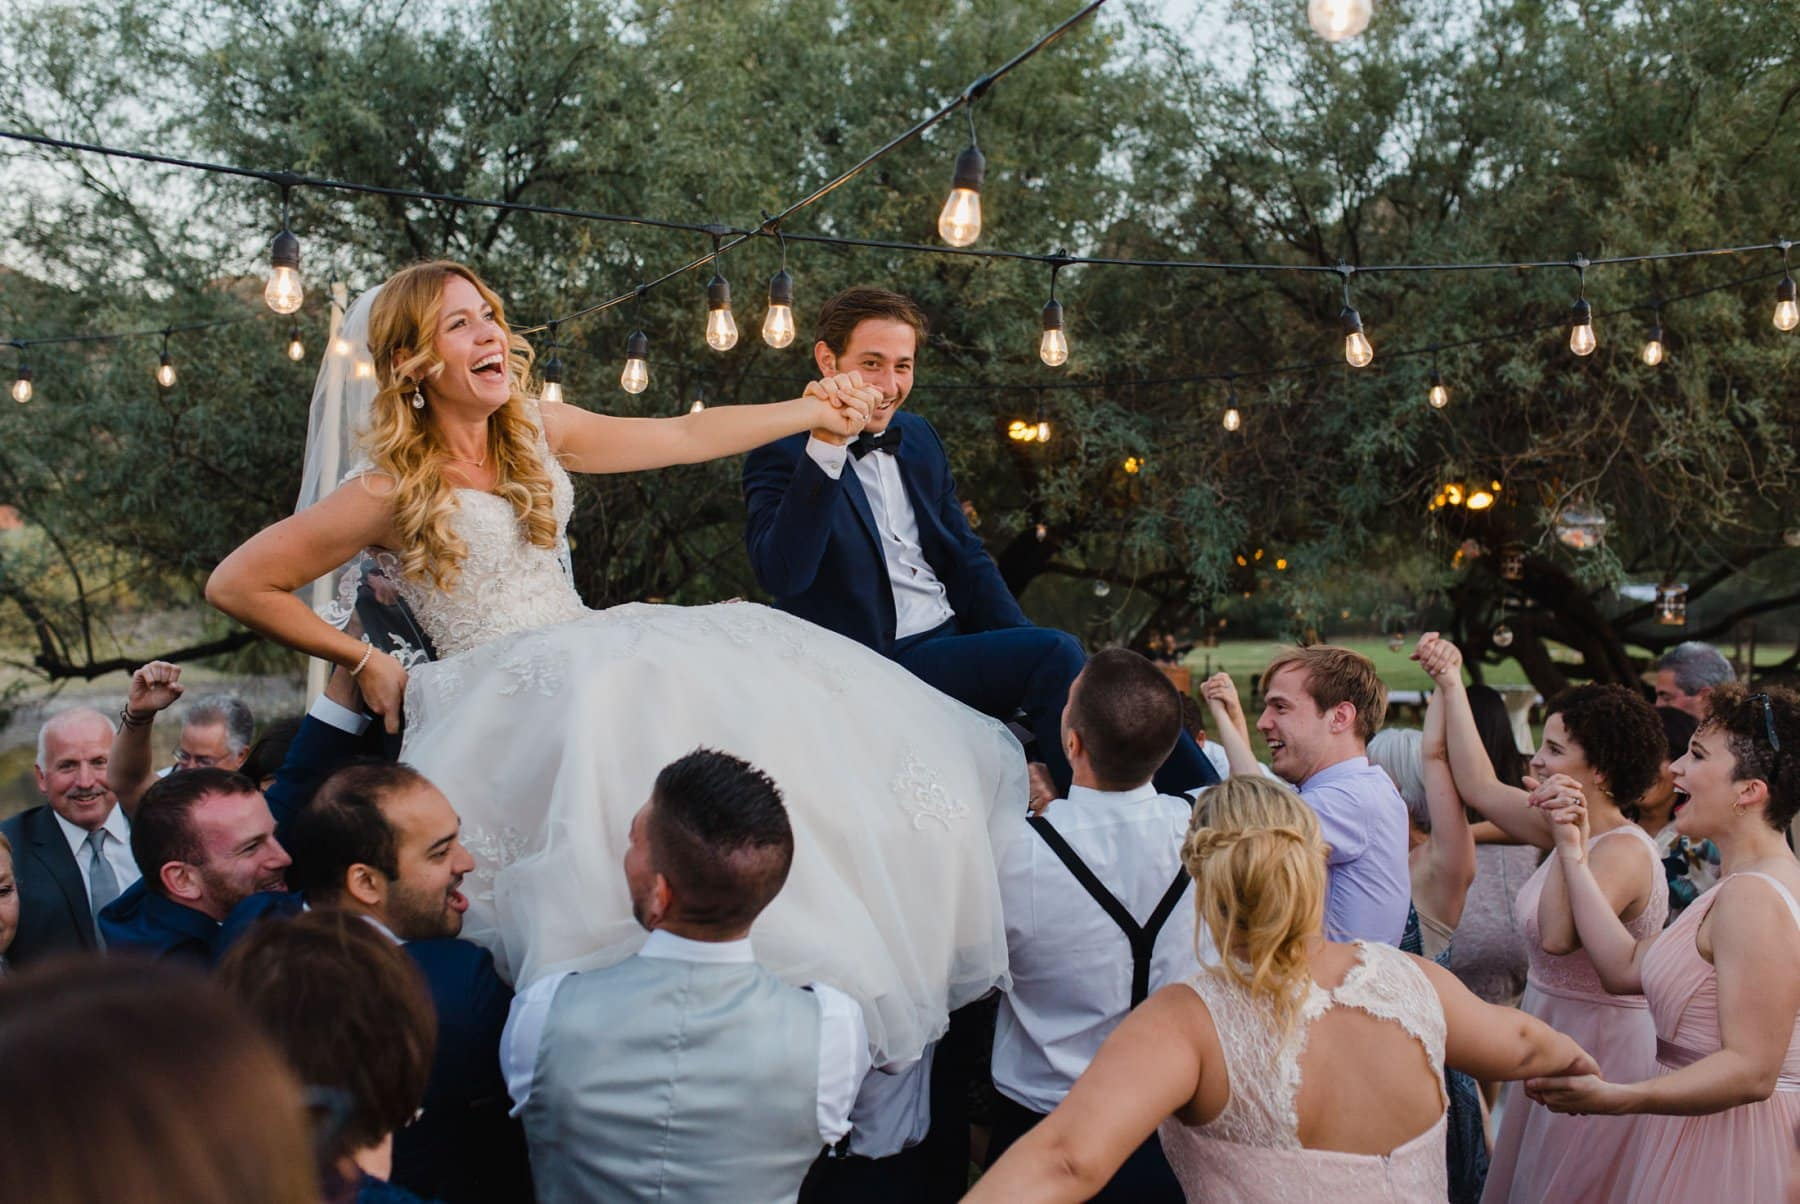 horah Jewish wedding dance Saguaro Lake Ranch wedding